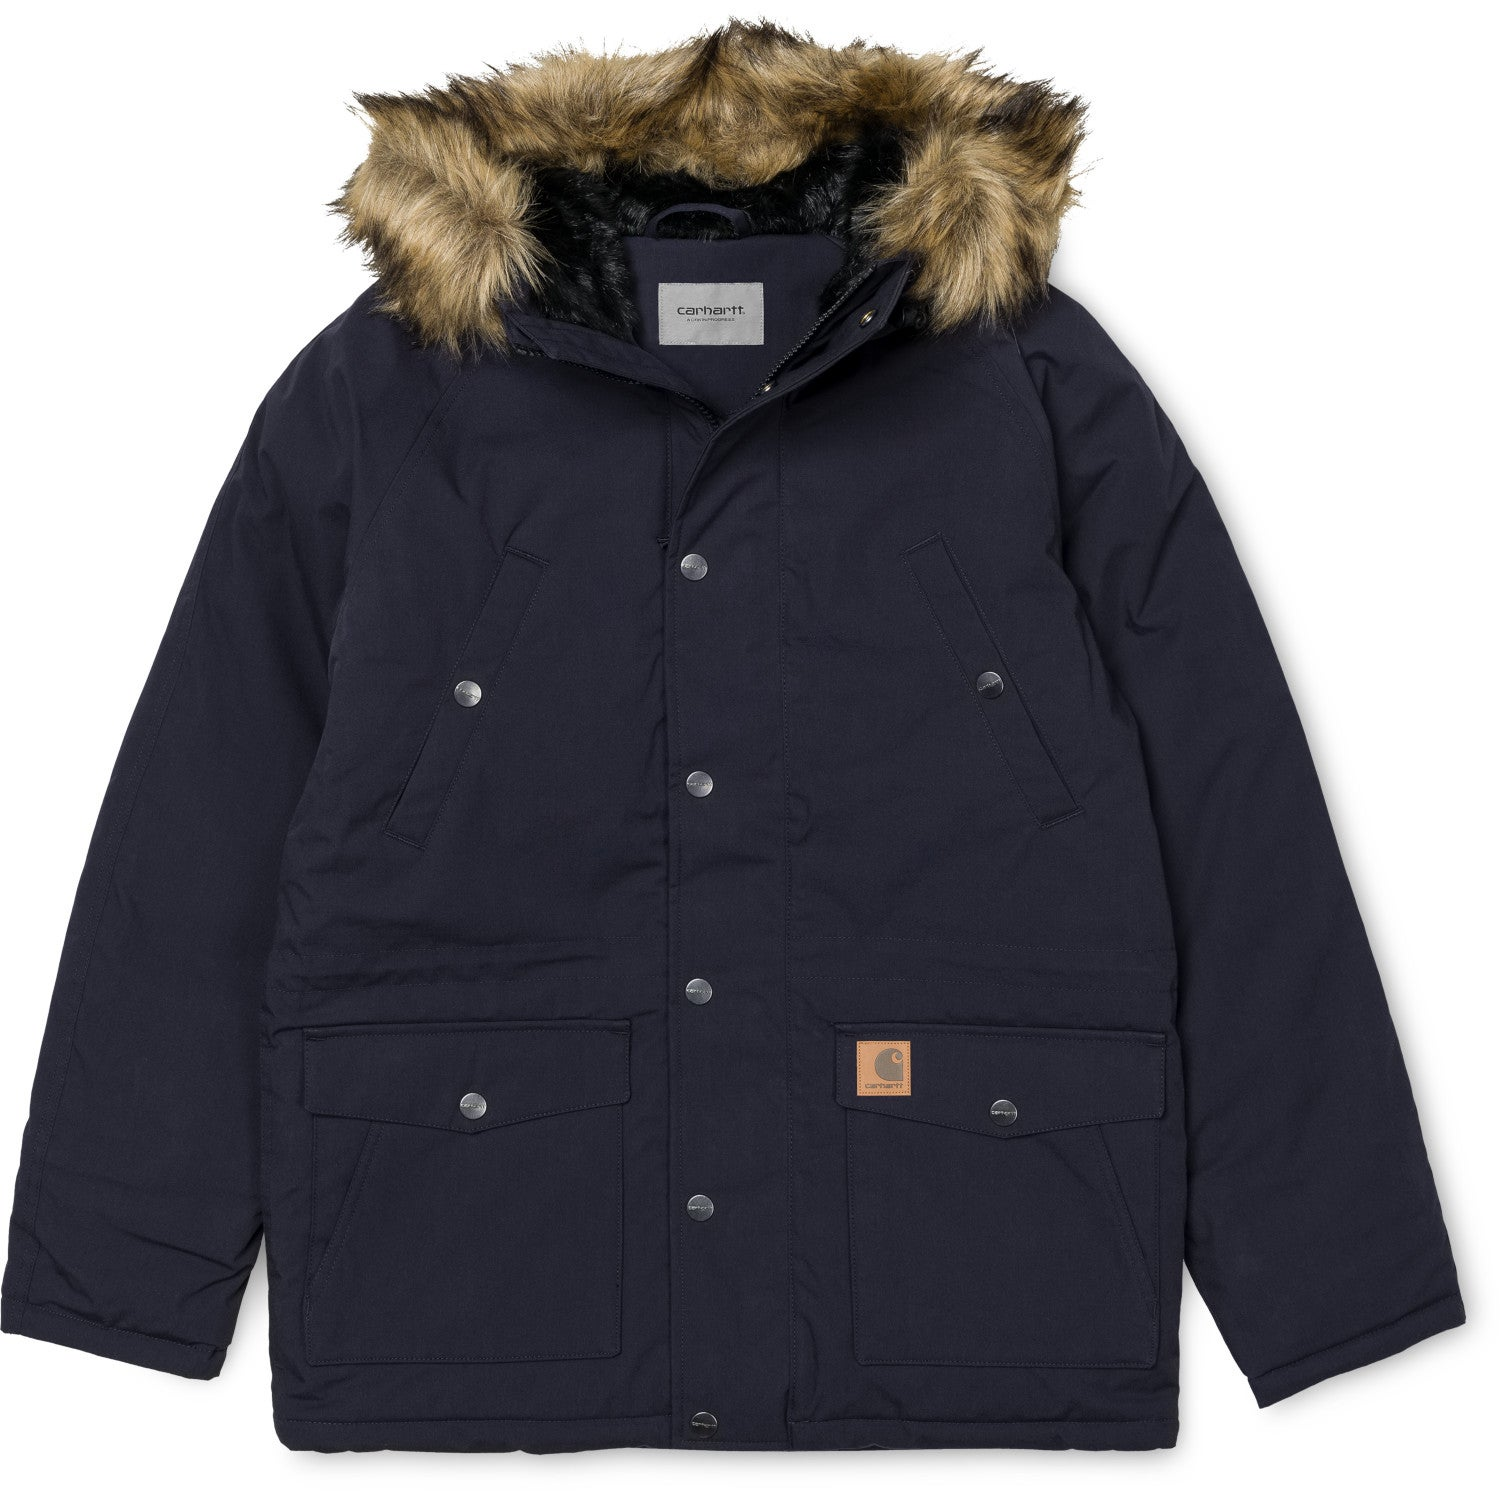 Carhartt Trapper Parka Mens Jacket